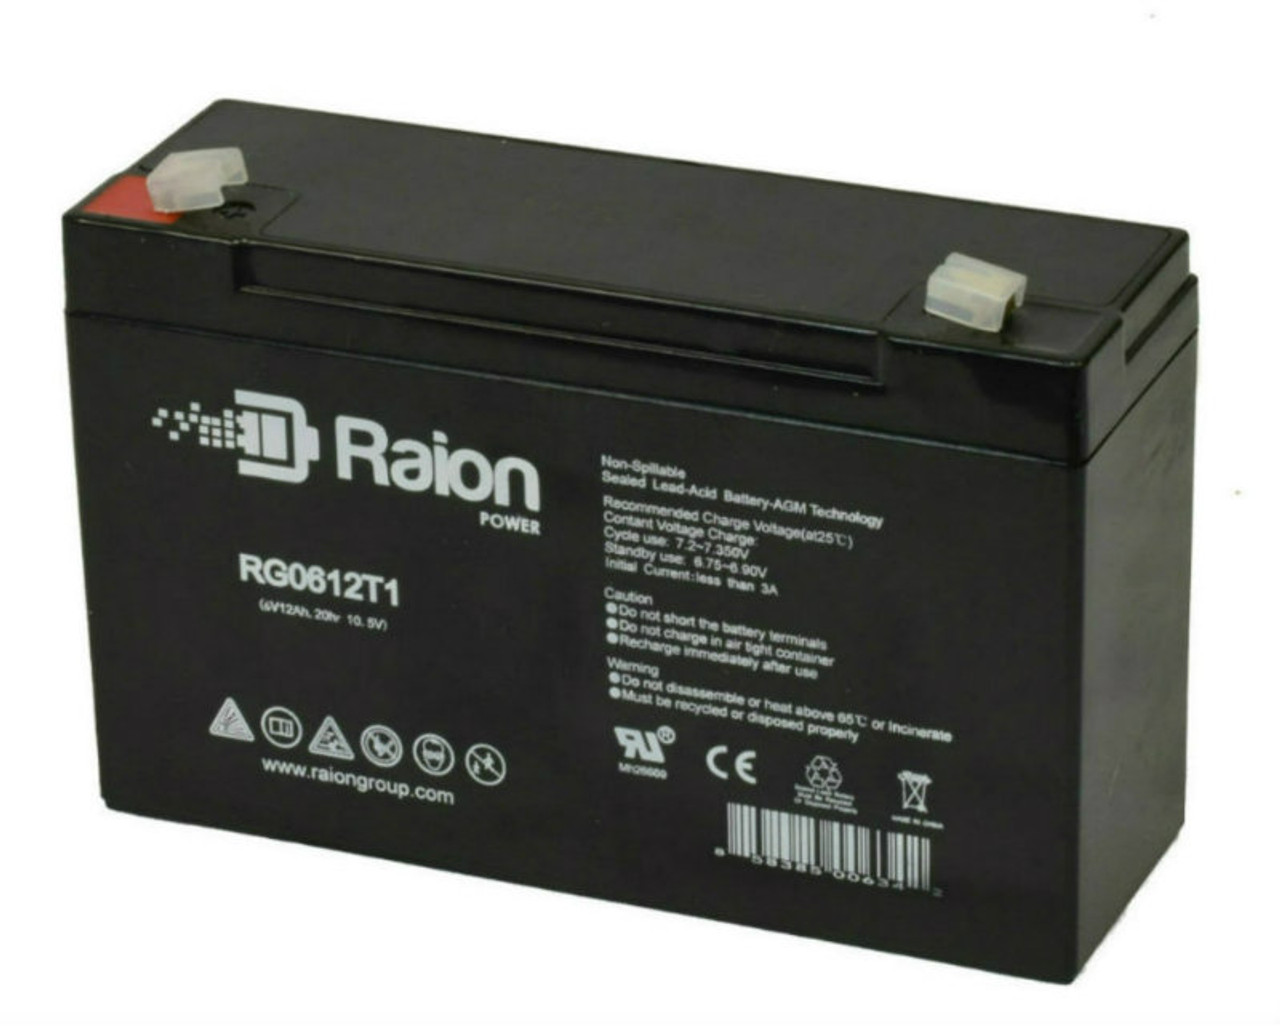 Raion Power RG06120T1 Replacement Battery Pack for Dynaray DR74914S emergency light